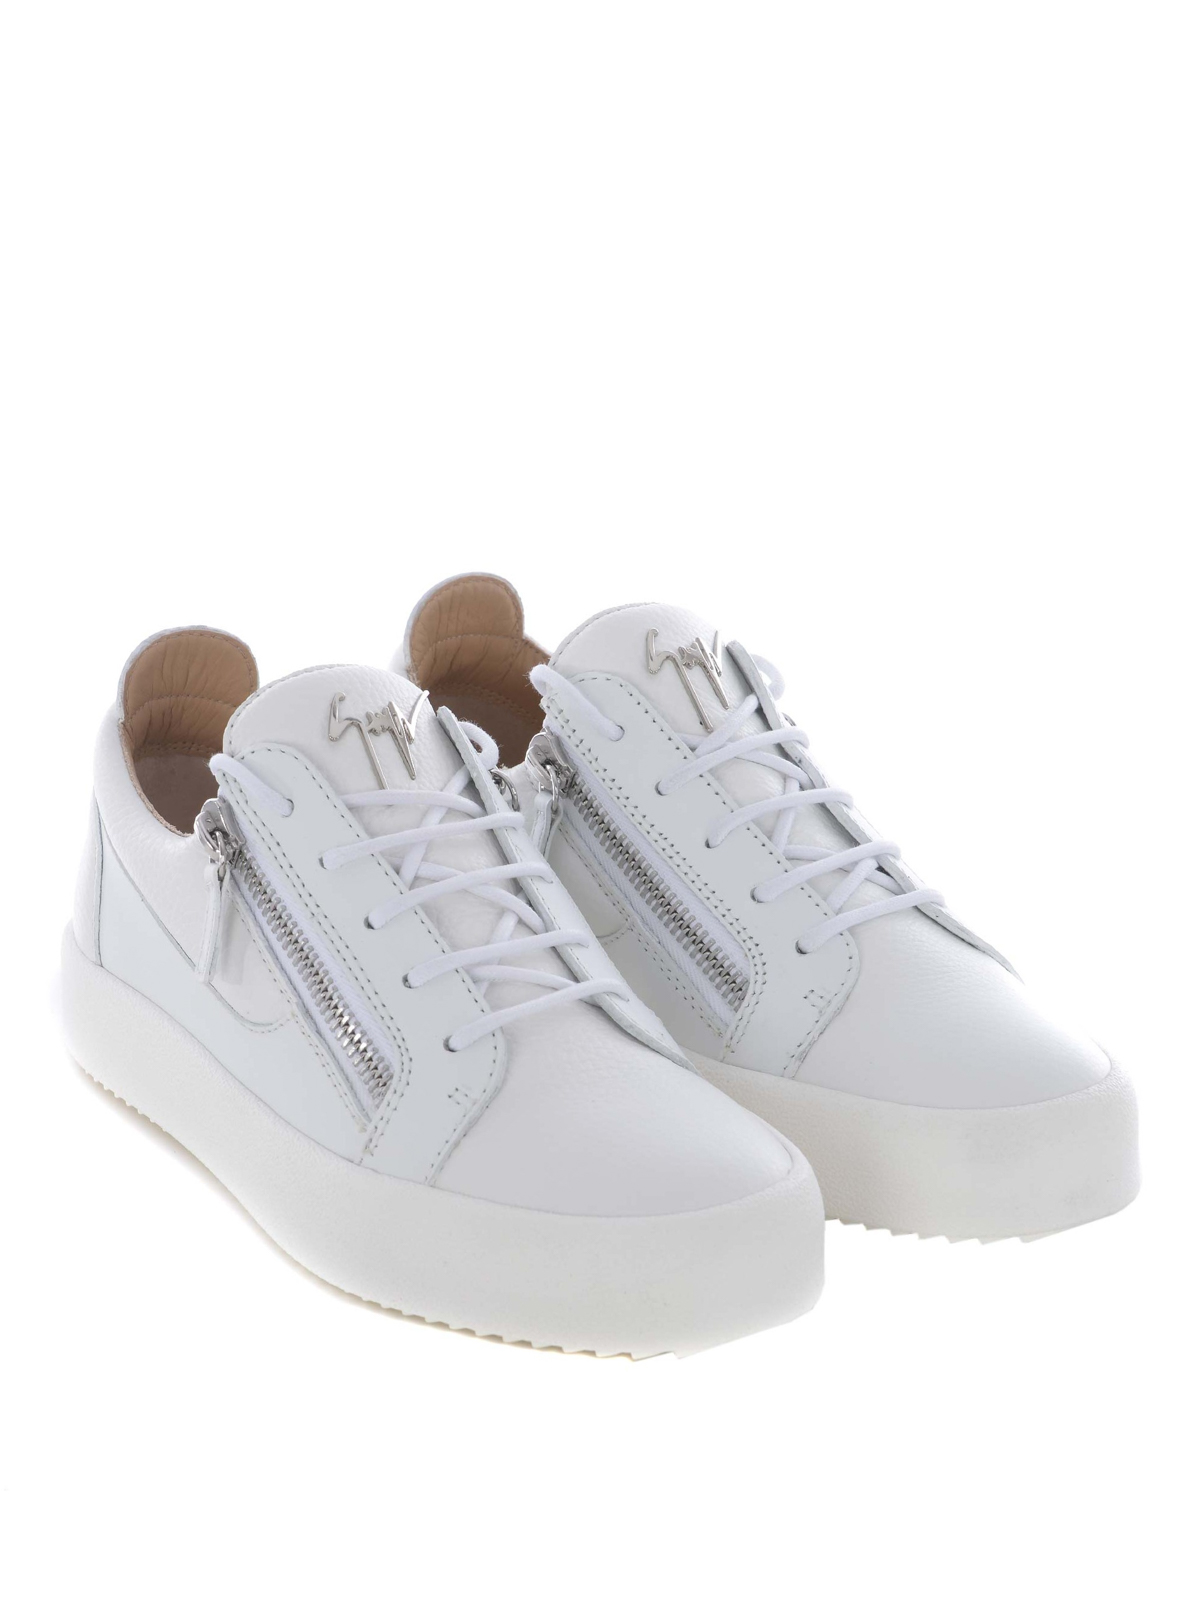 a6bd58dc3dcd4 GIUSEPPE ZANOTTI: trainers online - Frankie white leather sneakers